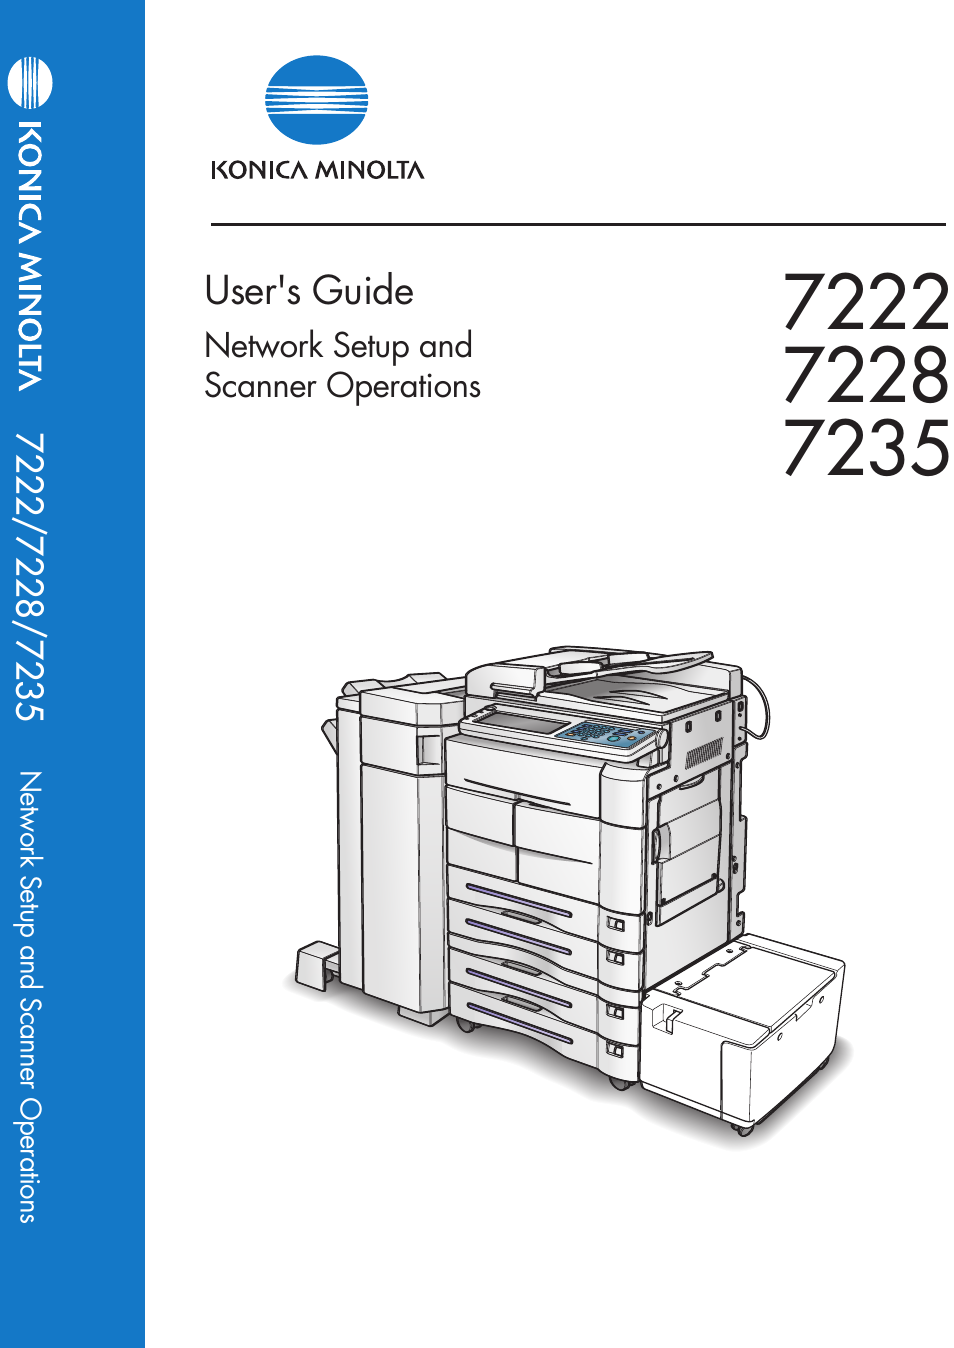 konica minolta 7235 user manual 230 pages also for 7222 7228 rh manualsdir com  konica minolta 7222 parts manual